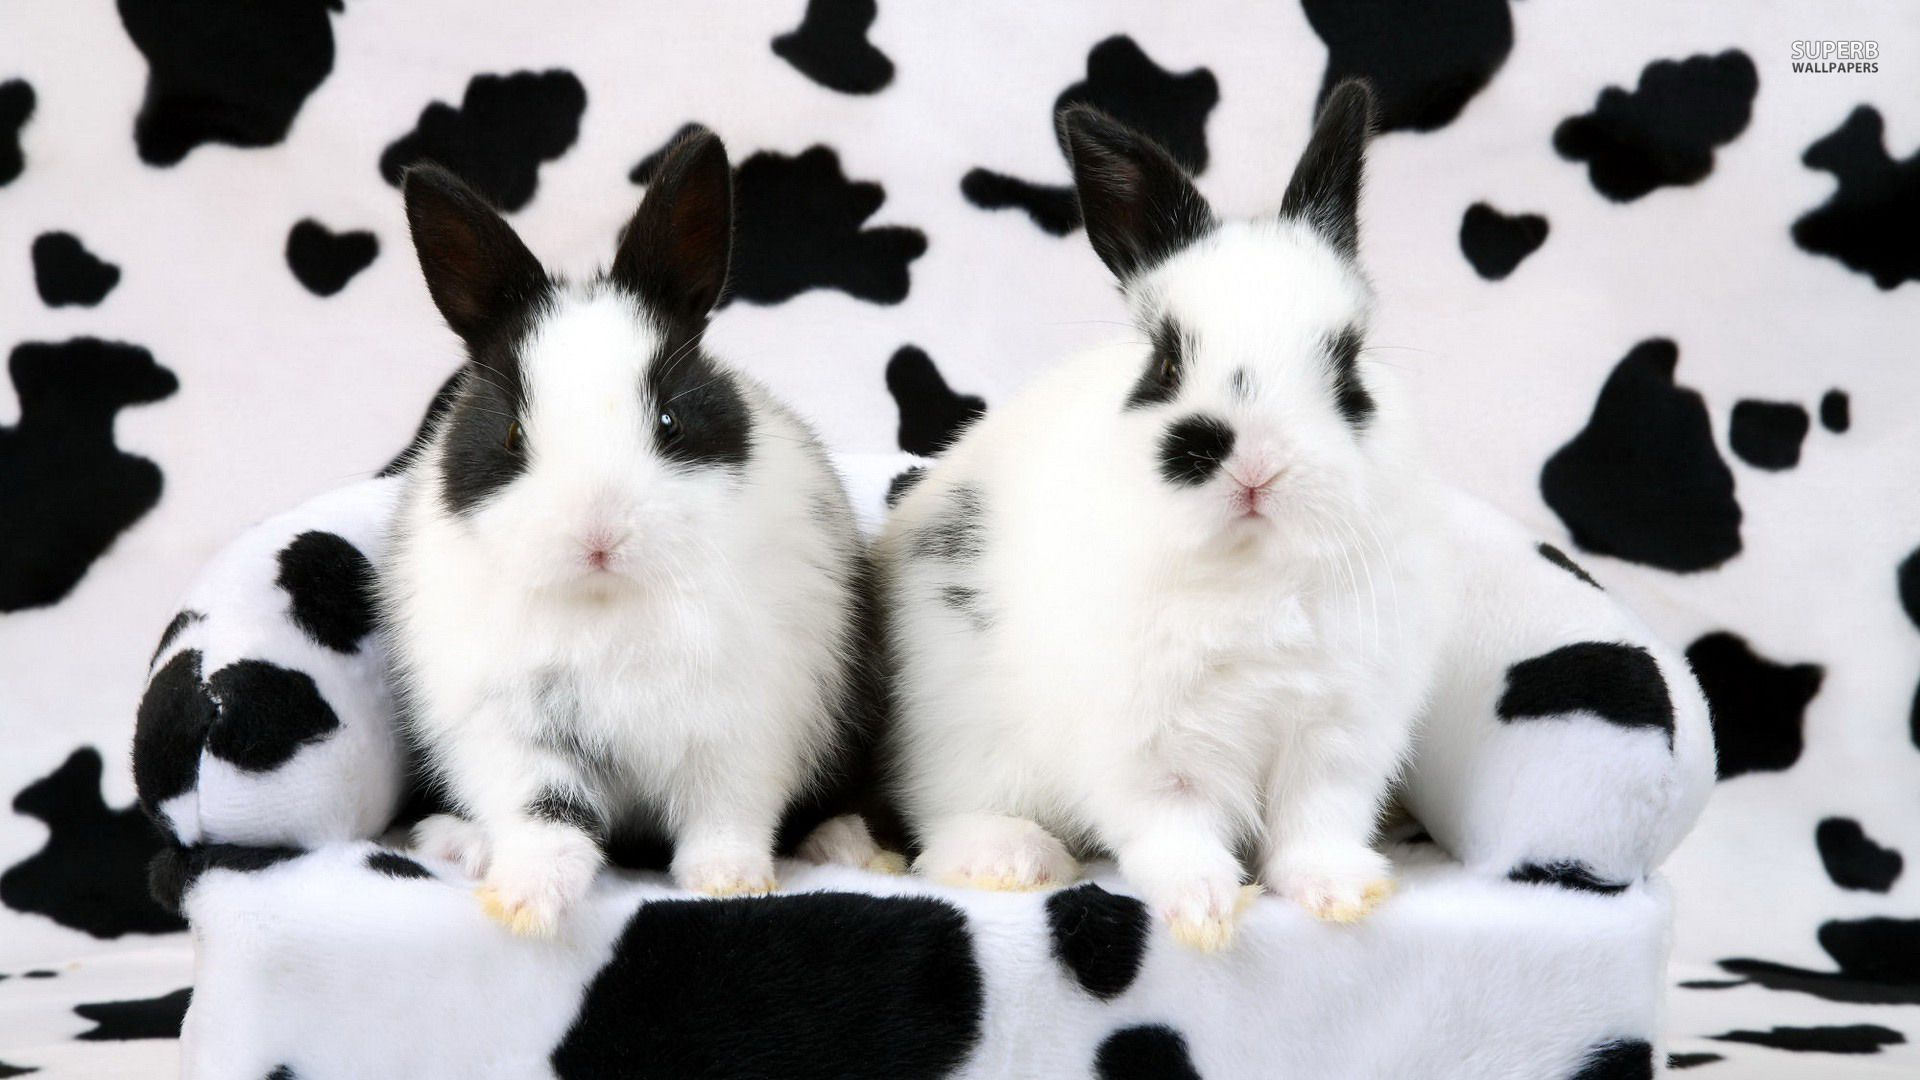 black and white rabbits | Black and white rabbits ...